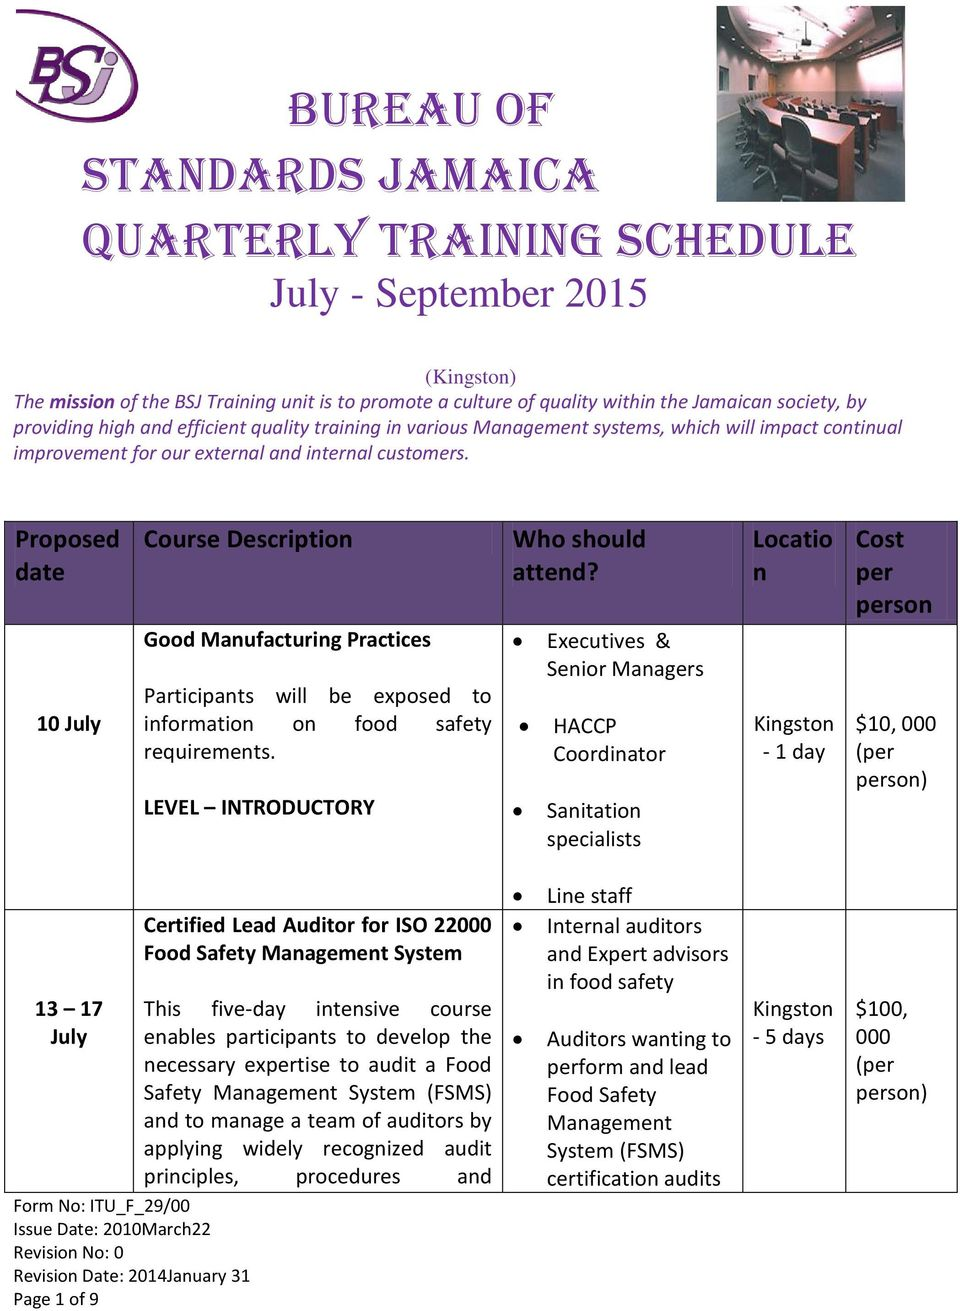 Bureau Of Standards Jamaica Quarterly Training Schedule July